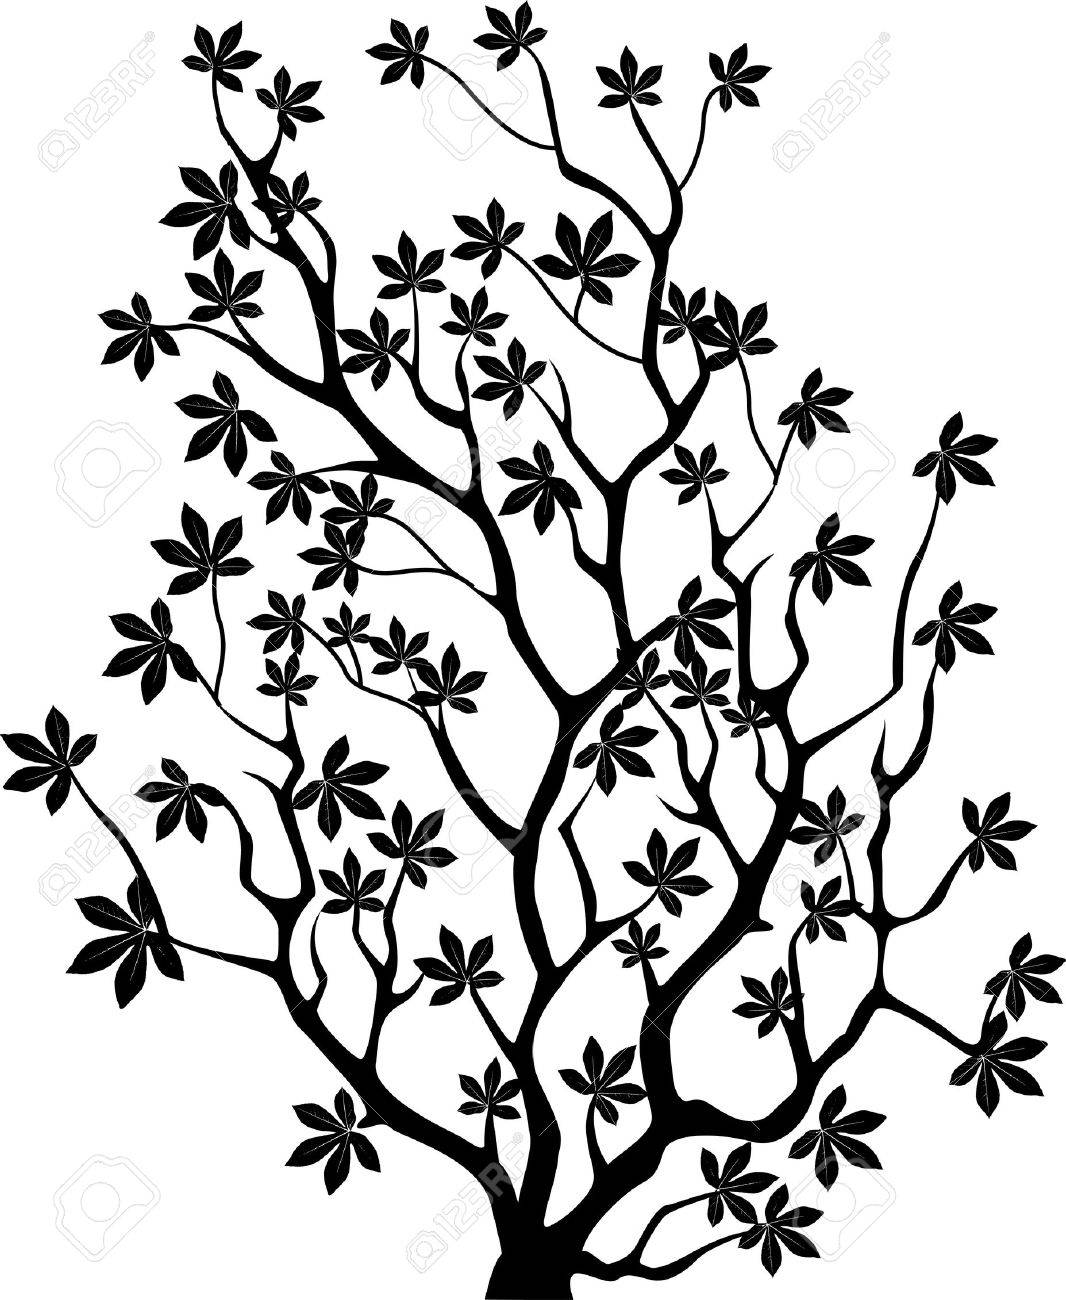 vector illustration of Tree silhouette Stock Vector - 14805655